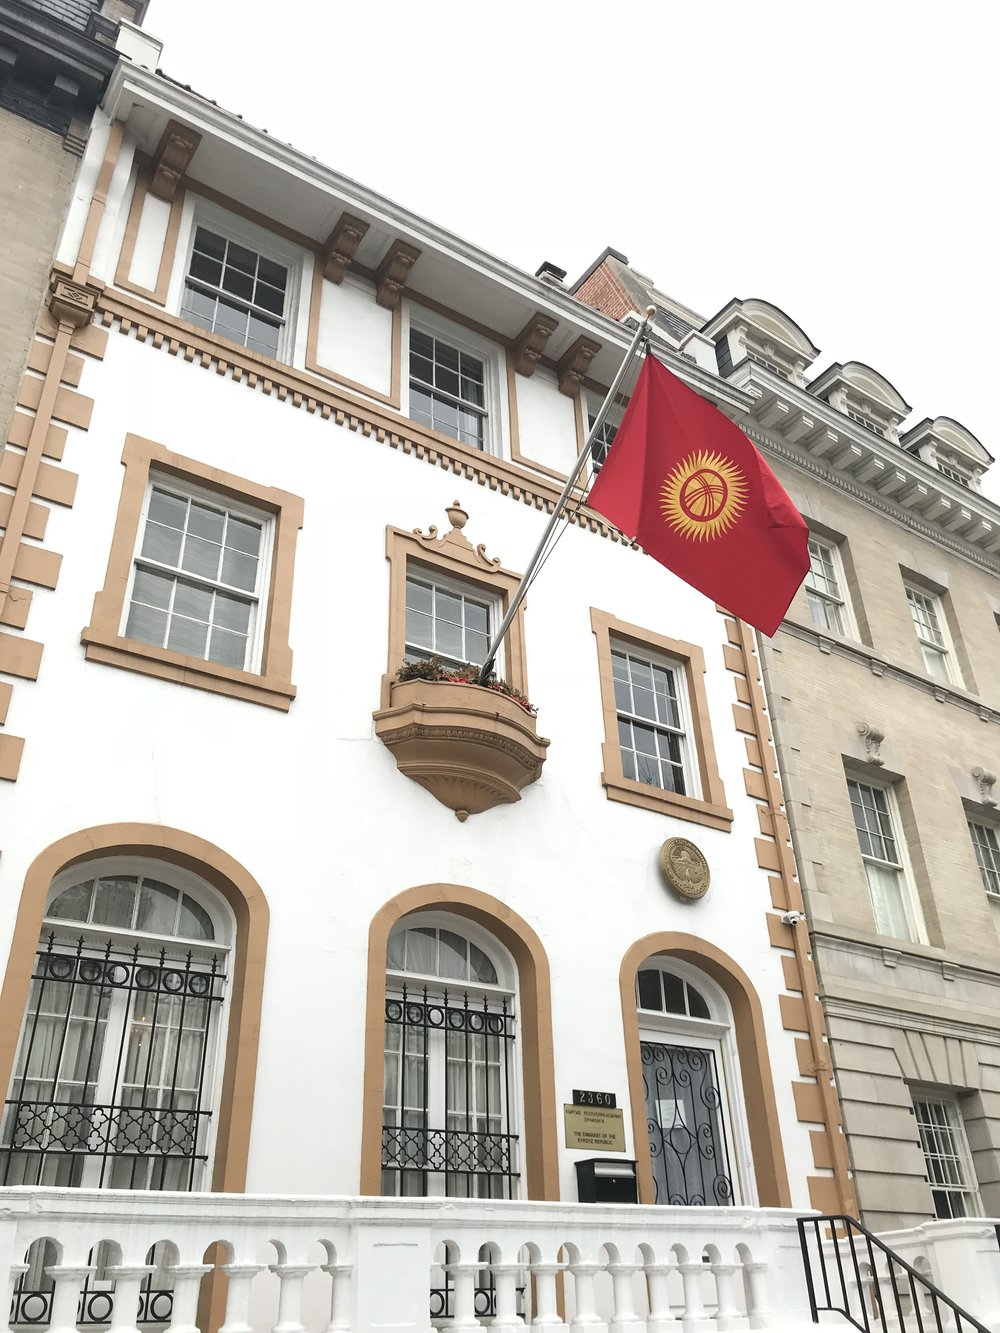 The Embassy of Kyrgyzstan.